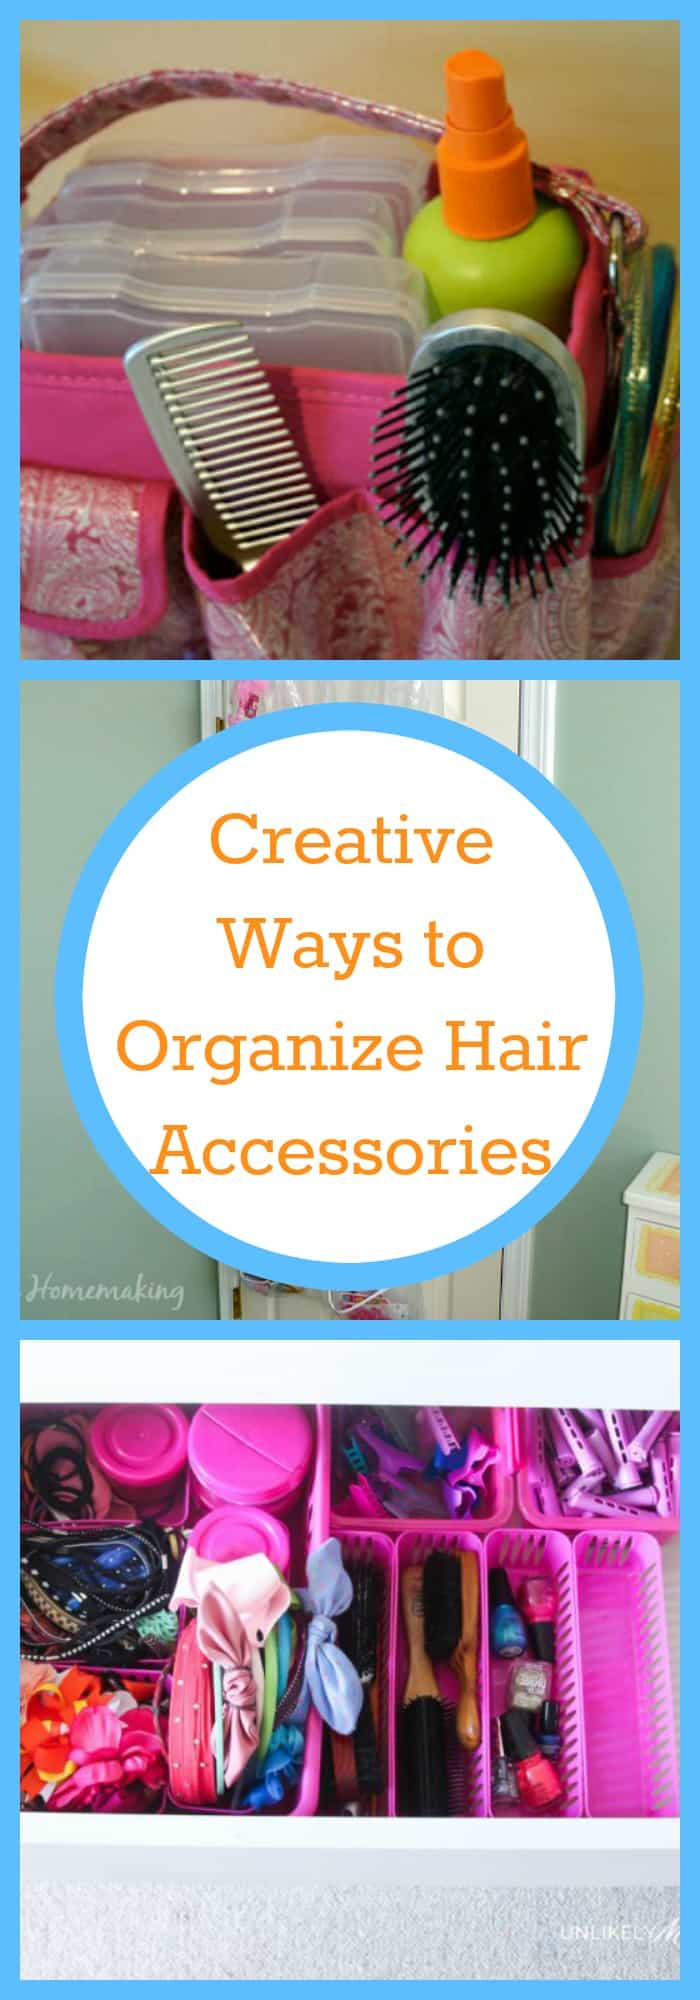 Creative Ways to Organize Hair Accesorries